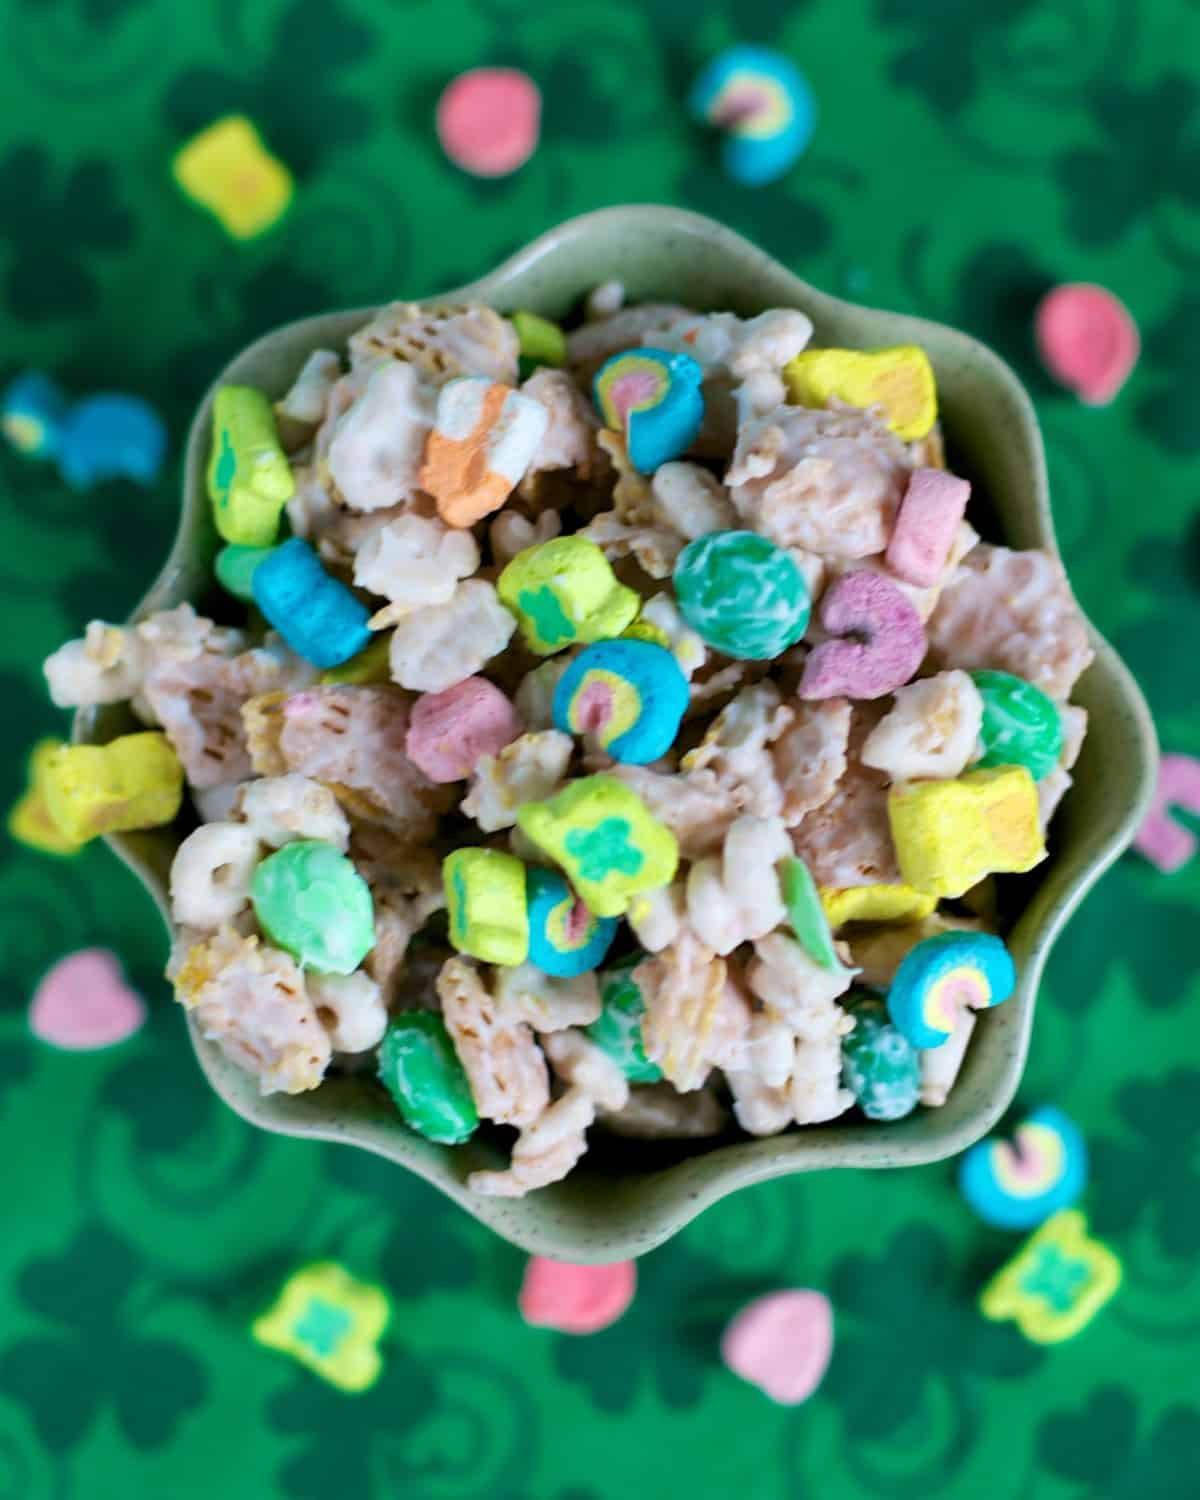 Leprechaun Bait - fun no-bake treat for St. Patrick's Day! Crispix, Lucky Charms, M&Ms and almond bark. Great for parties!! #stpatricksday #nobake #dessert